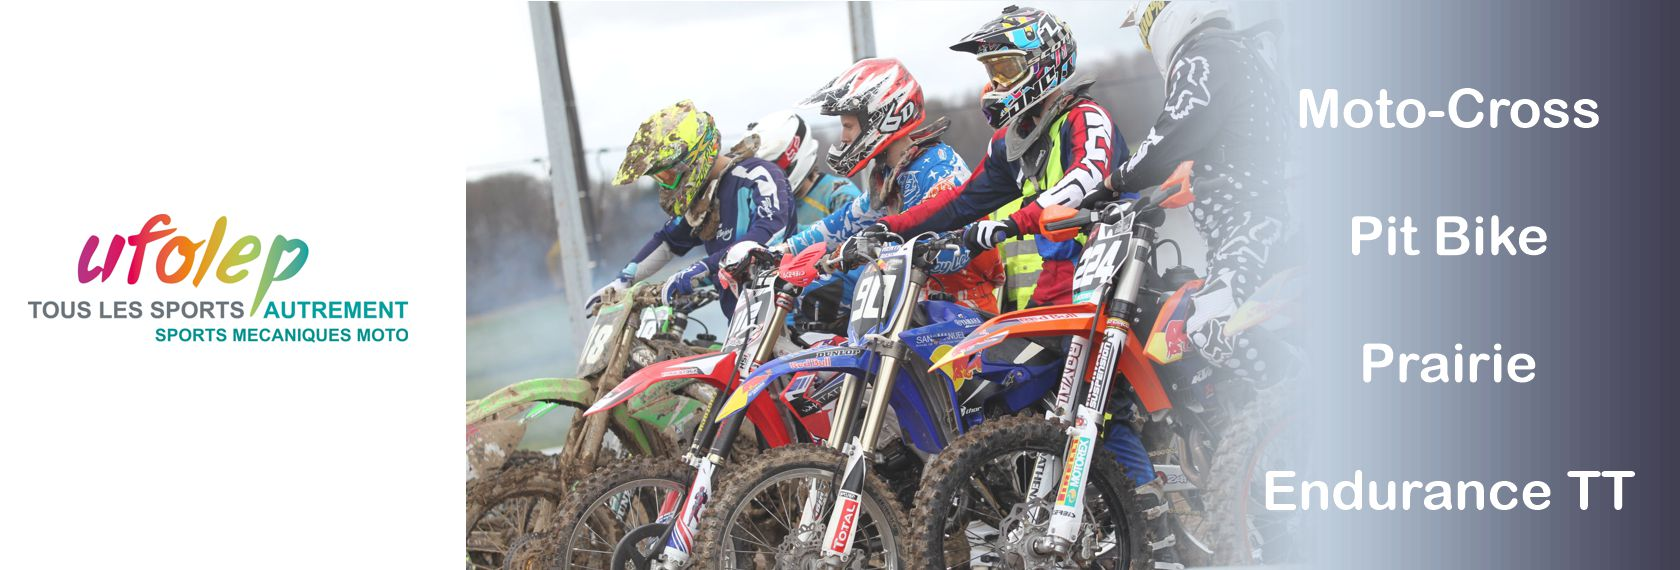 Calendrier Motocross Champagne Ardenne 2022 UFOLEP   MOTO   Calendrier